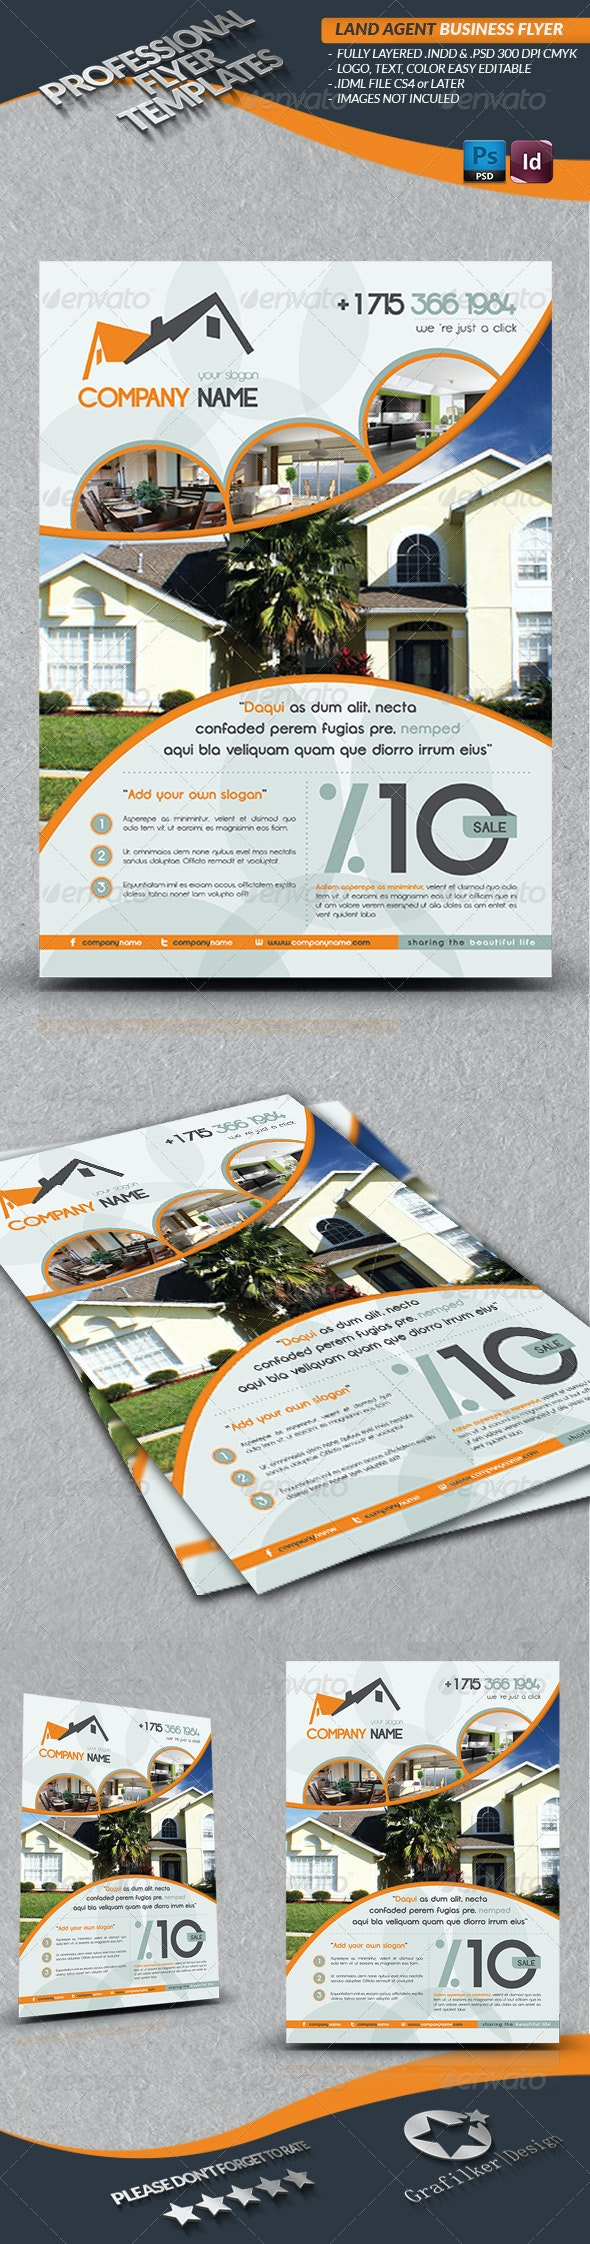 Land Agent Business Flyer - Corporate Flyers